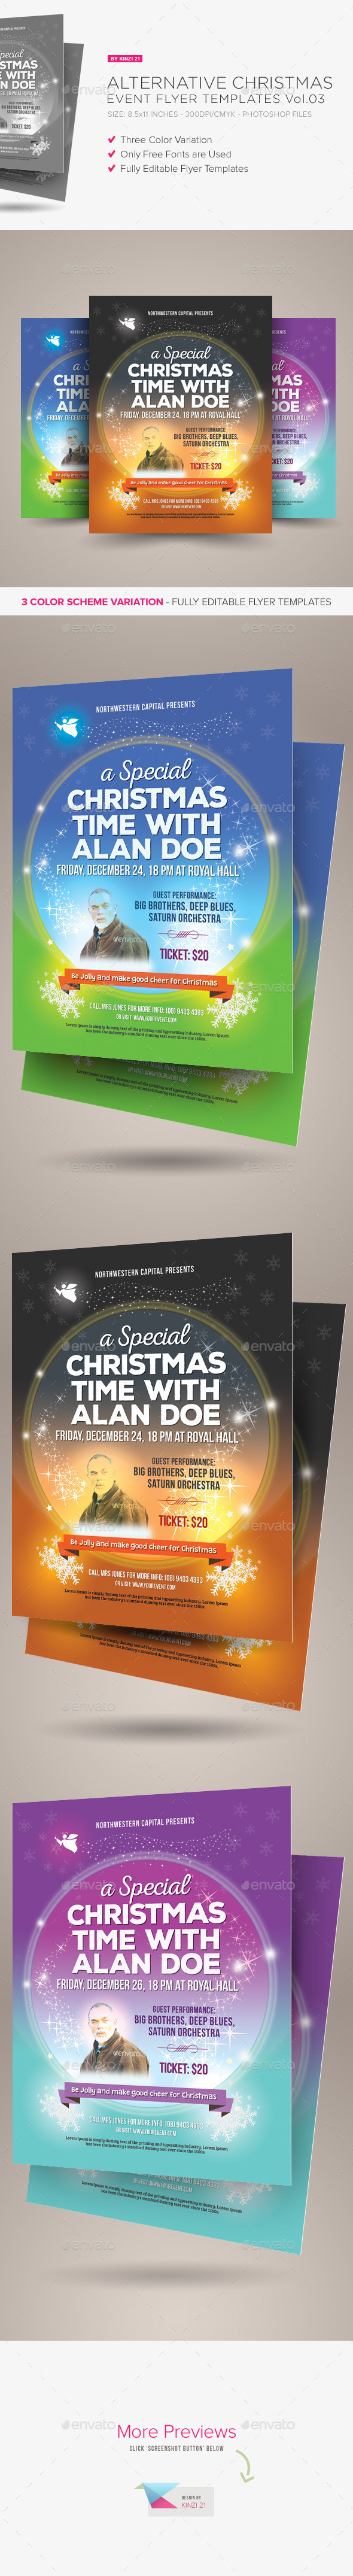 GraphicRiver Alternative Christmas Event Flyer Vol.03 9538862